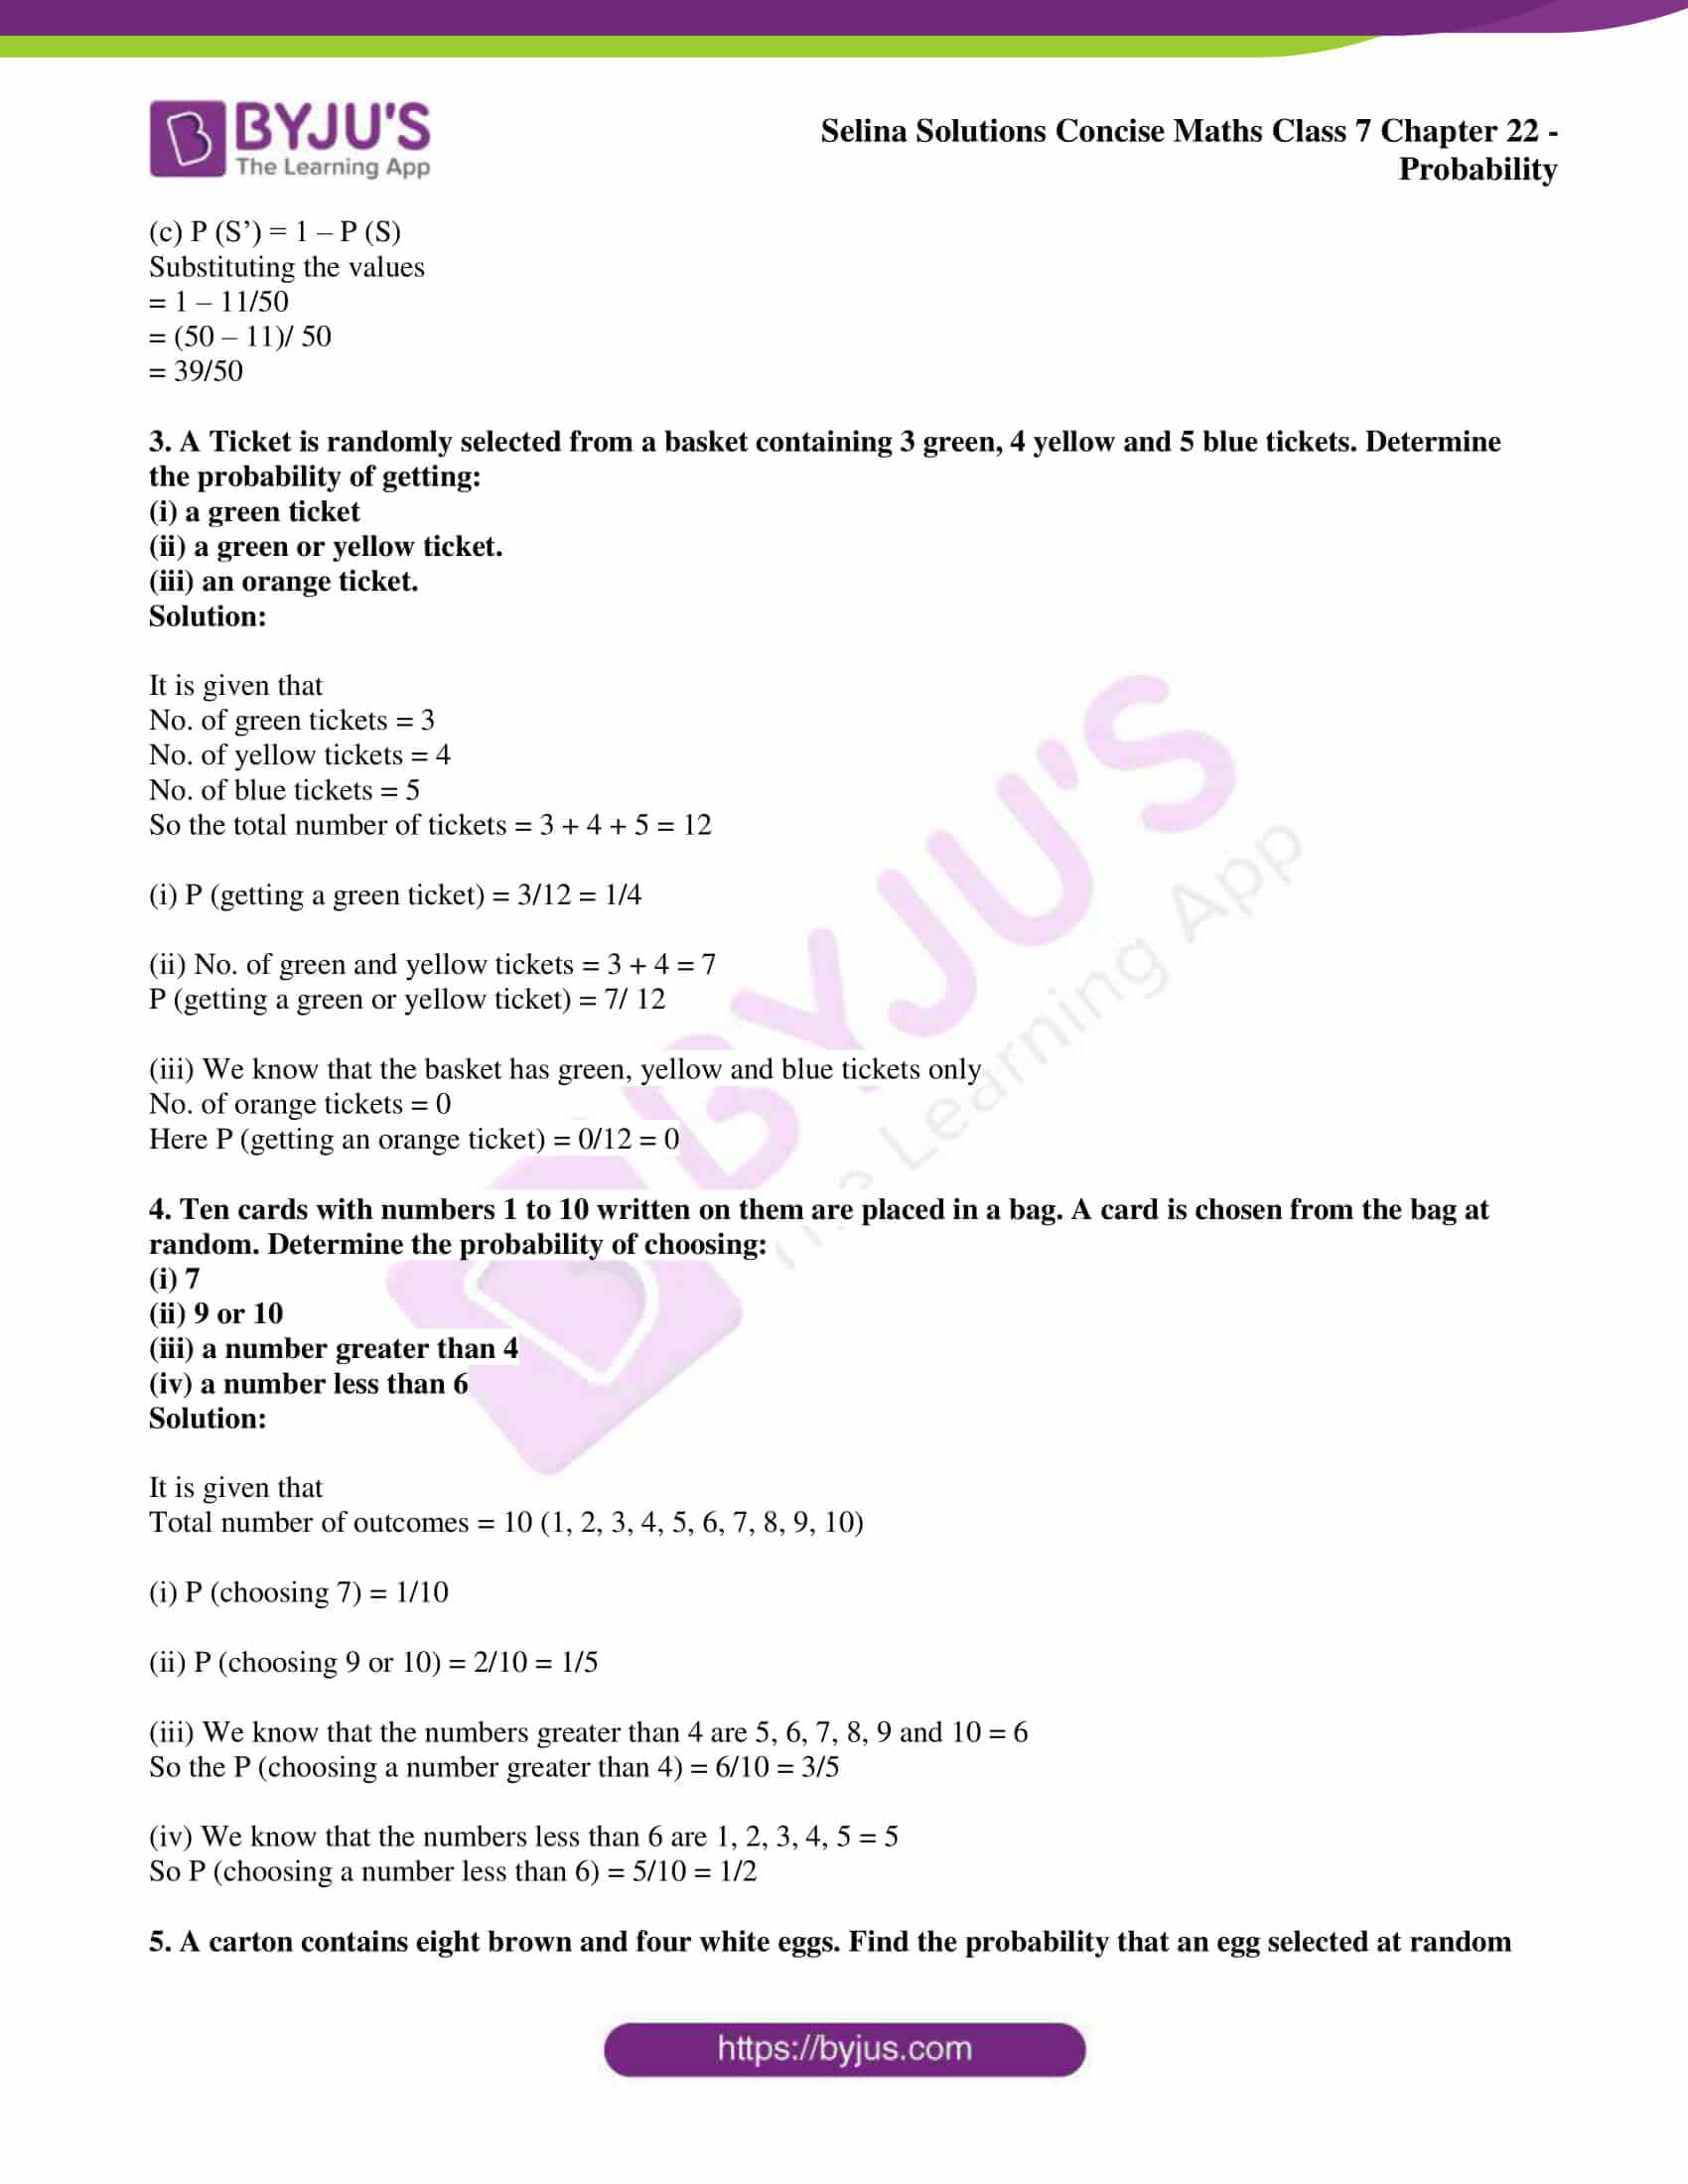 selina sol concise maths class 7 chapter 22 ex b 2